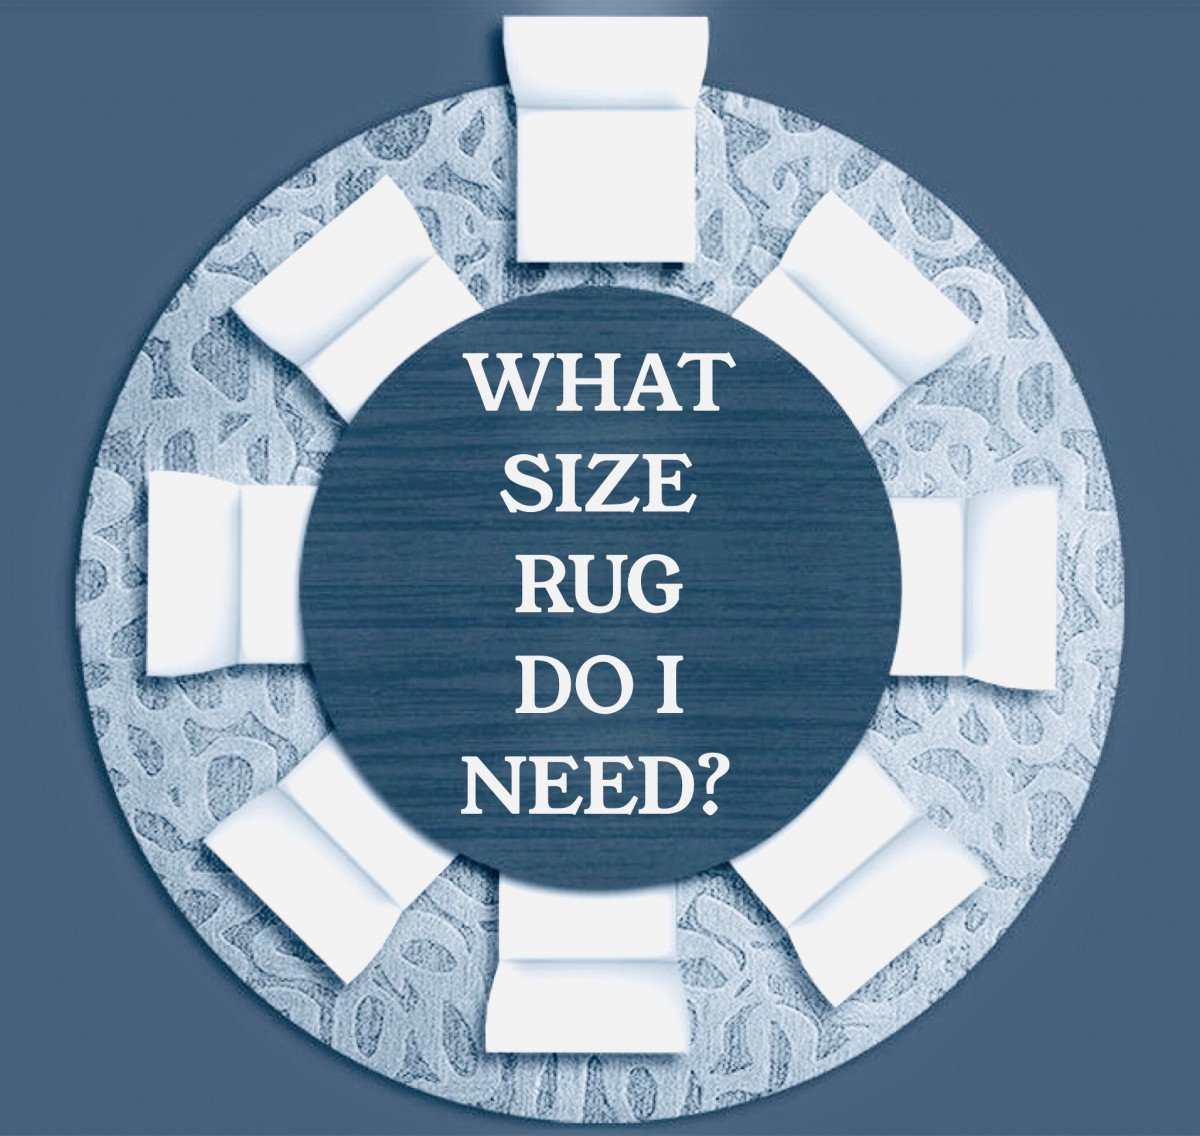 What Size Rug Do I Need?